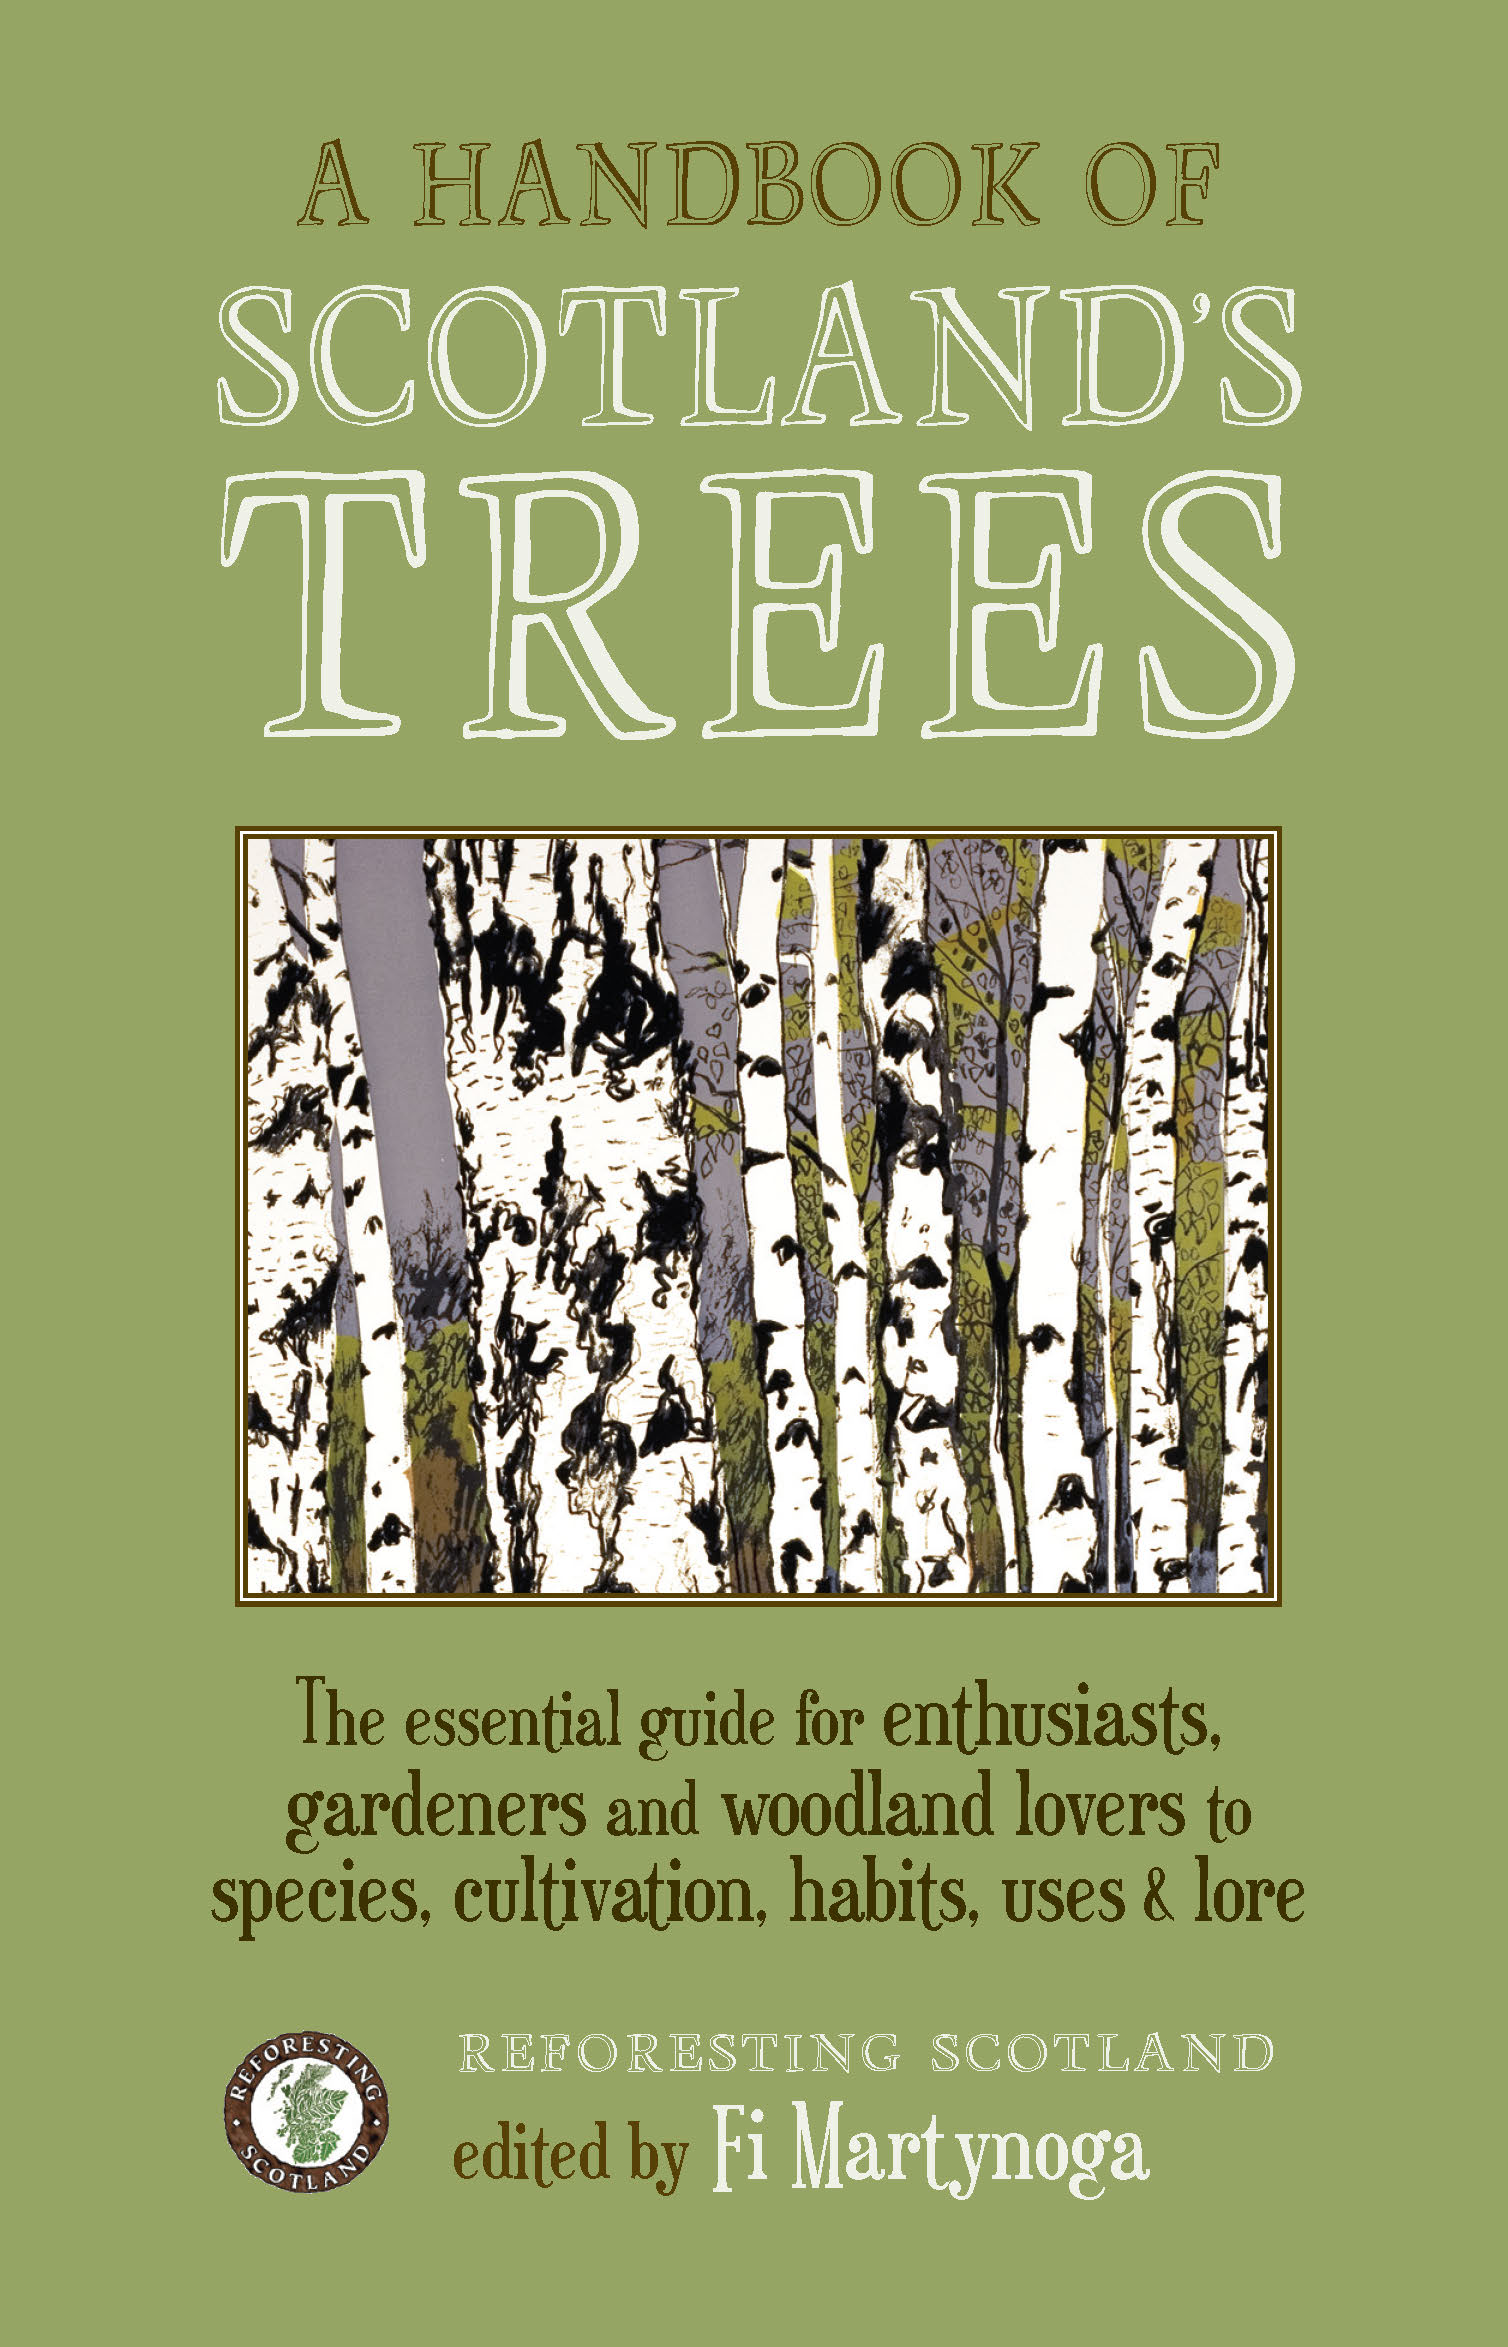 A Handbook of Scotland's Trees